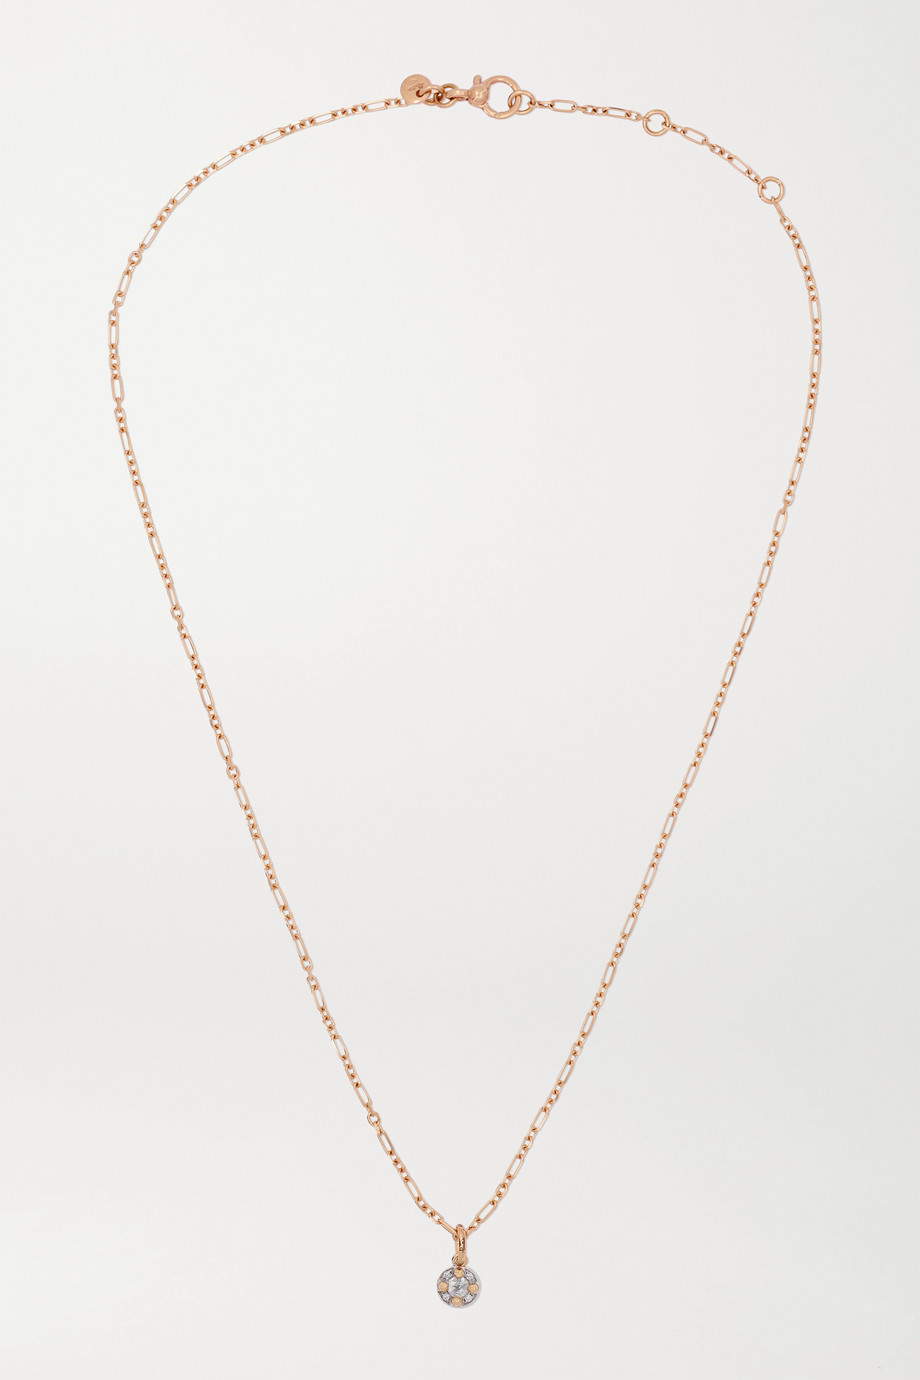 Pomellato M'ama non M'ama 18-karat rose gold diamond necklace